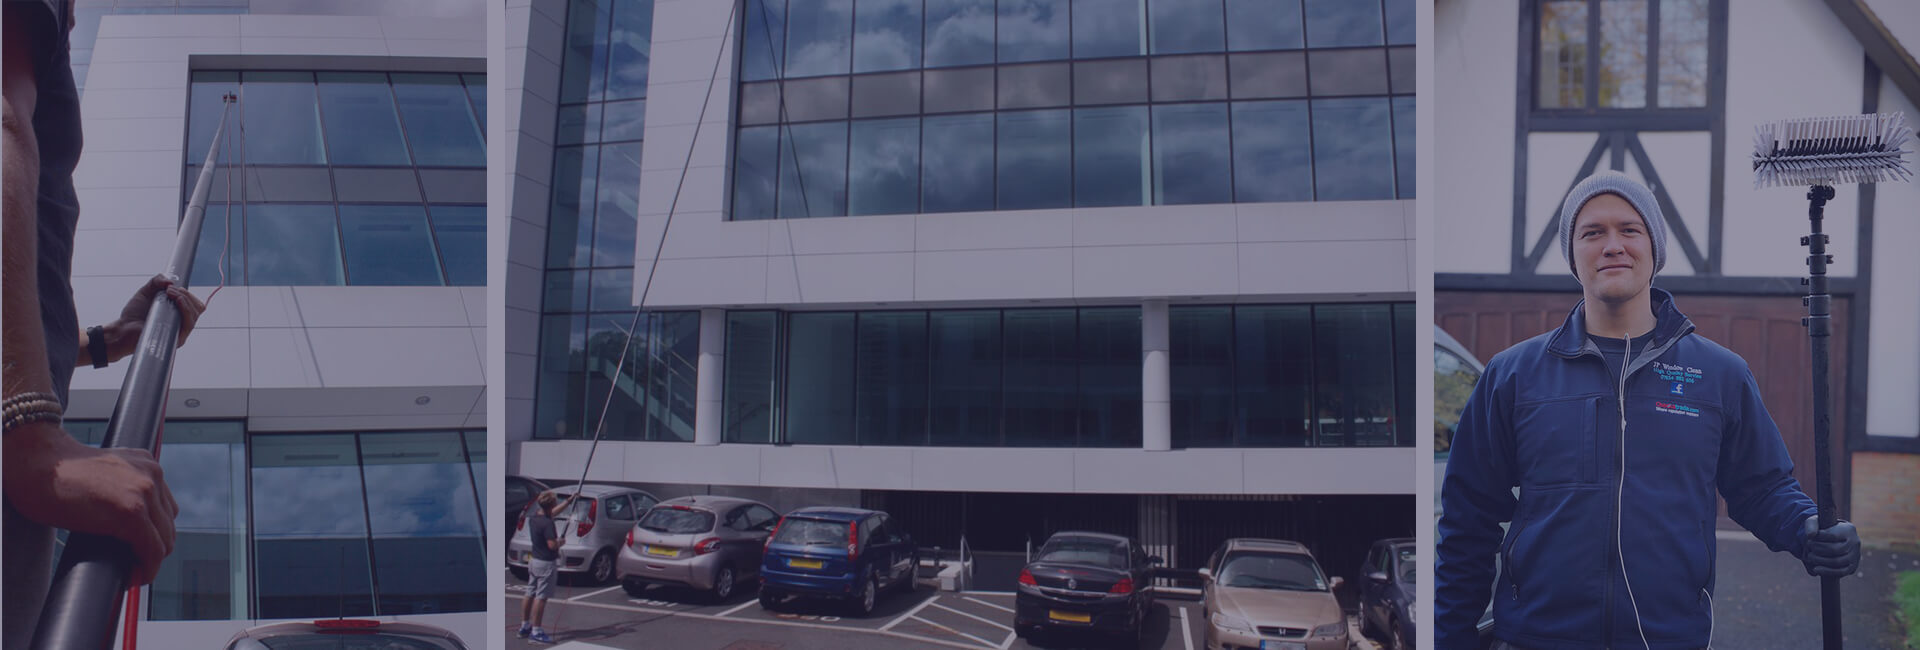 Commercial-window-cleaning-Surrey